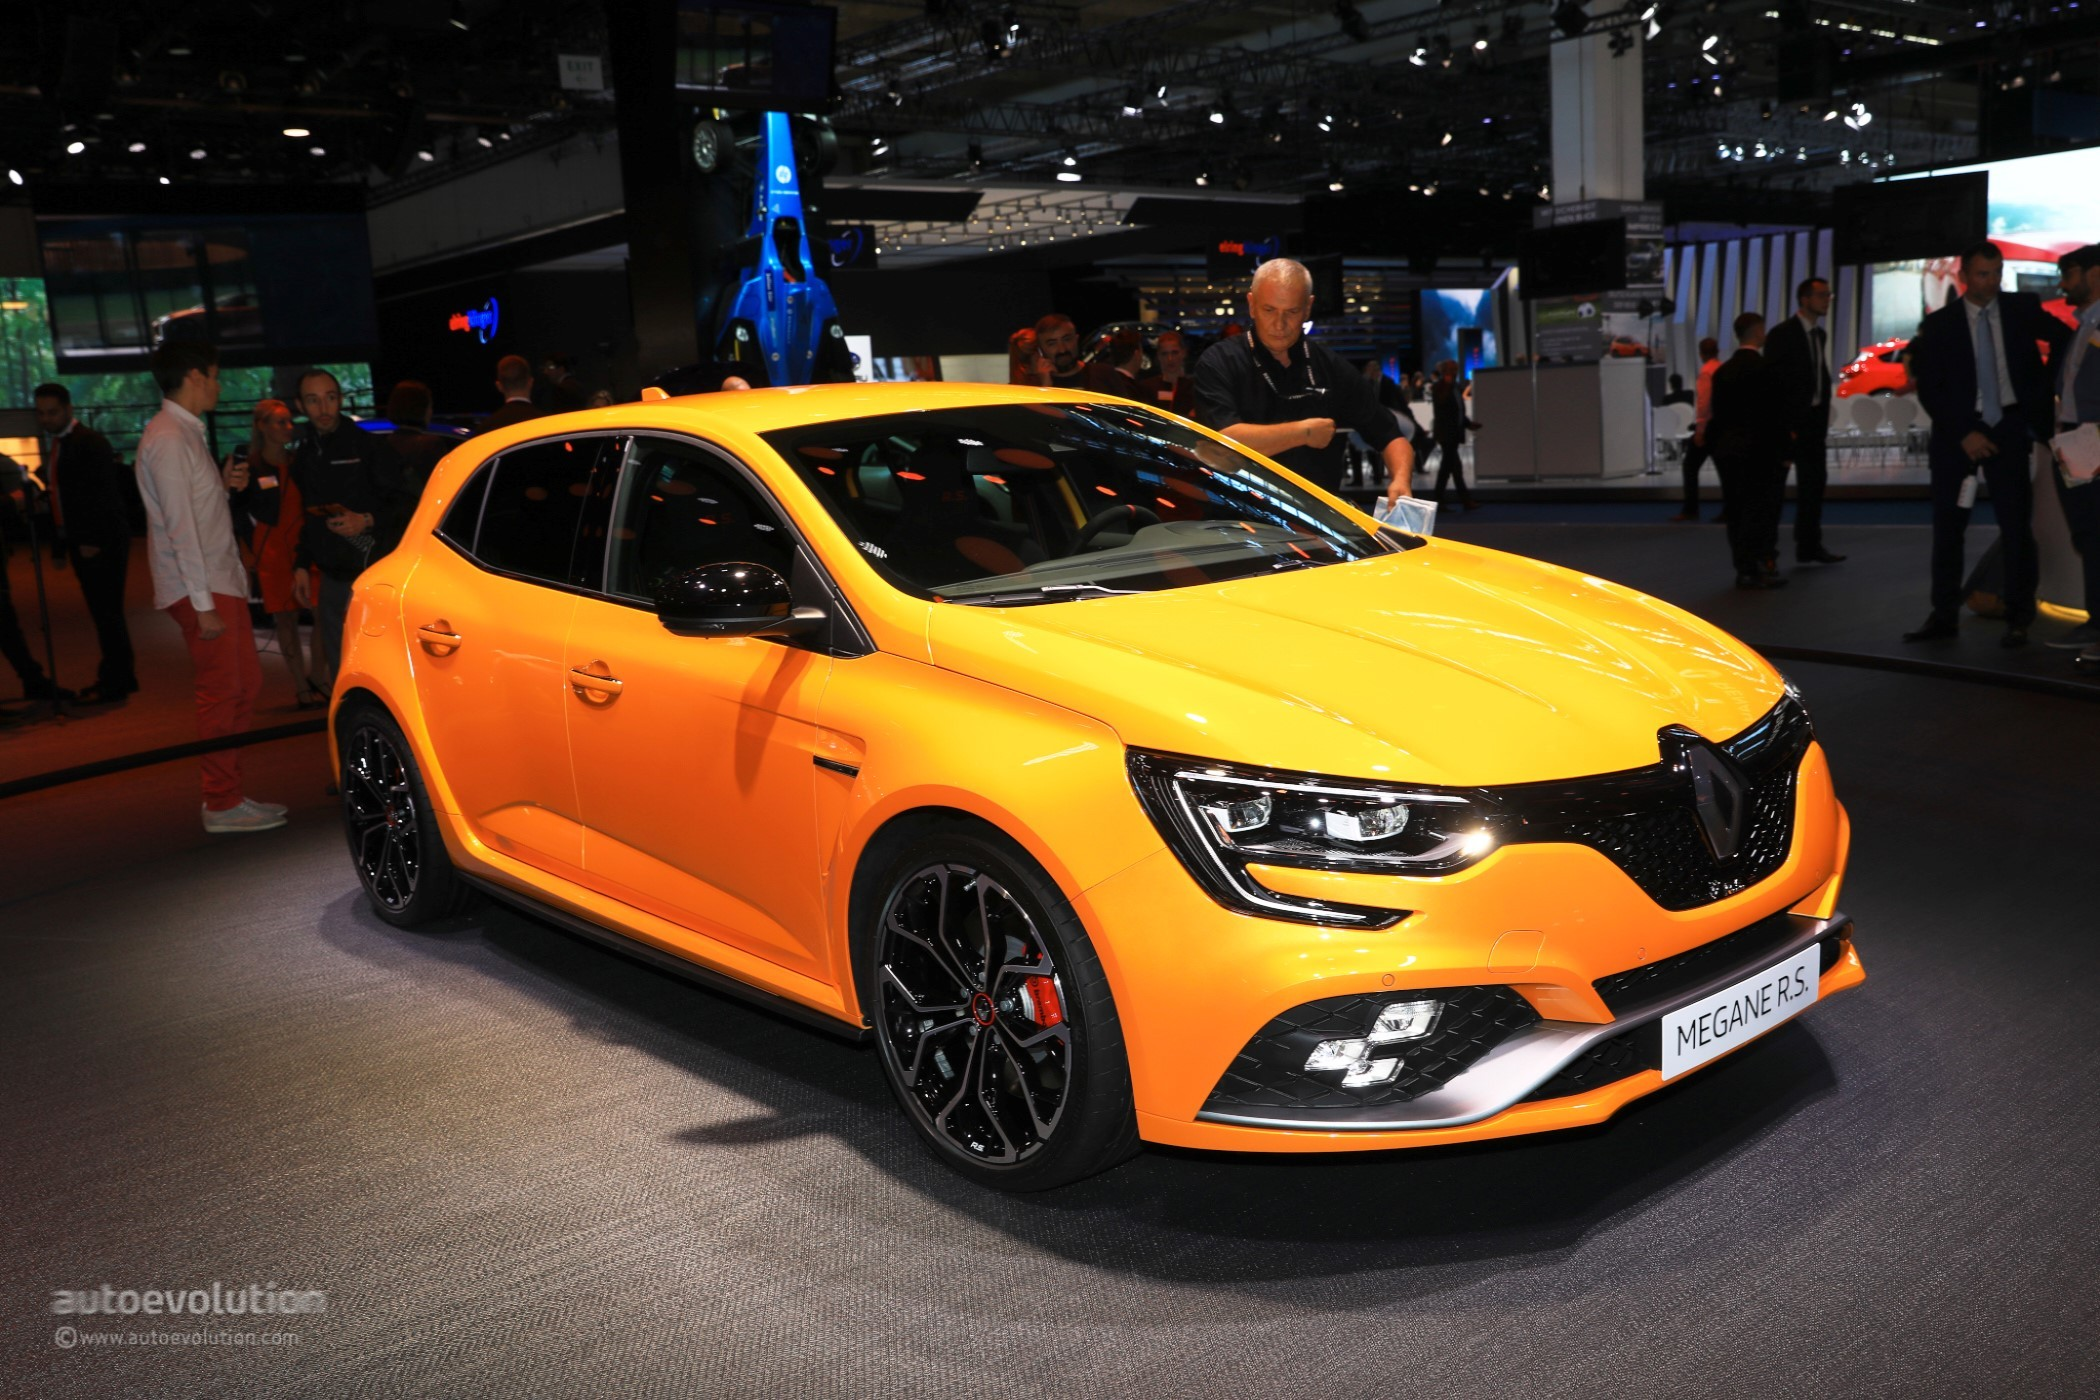 2018 Megane RS 3-Door Rendering Feels Ridiculous